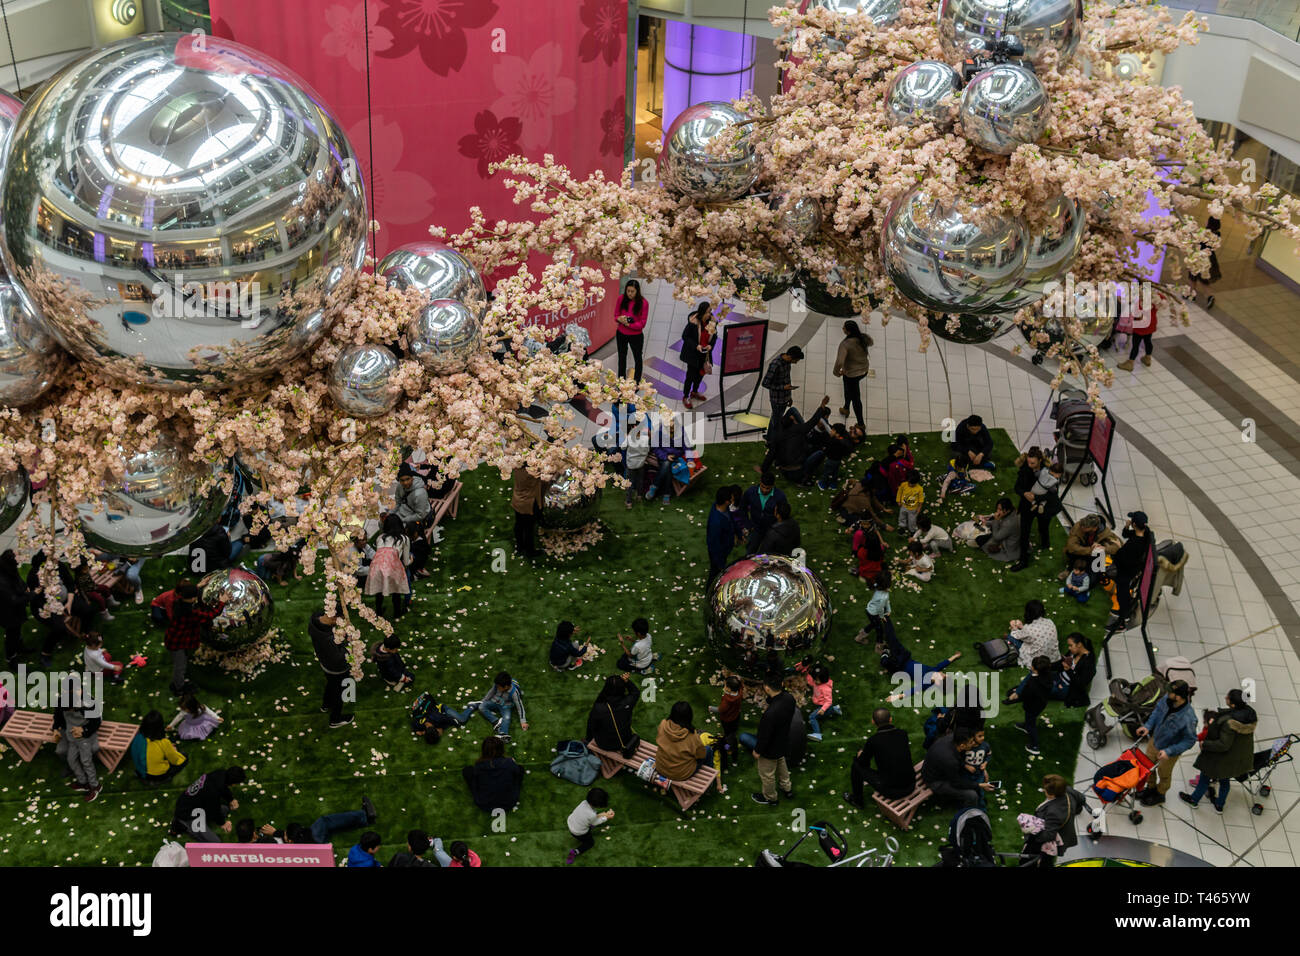 Burnaby, CANADA - March 10, 2019: interior view of Metropolis at Metrotown shopping mall. - Stock Image